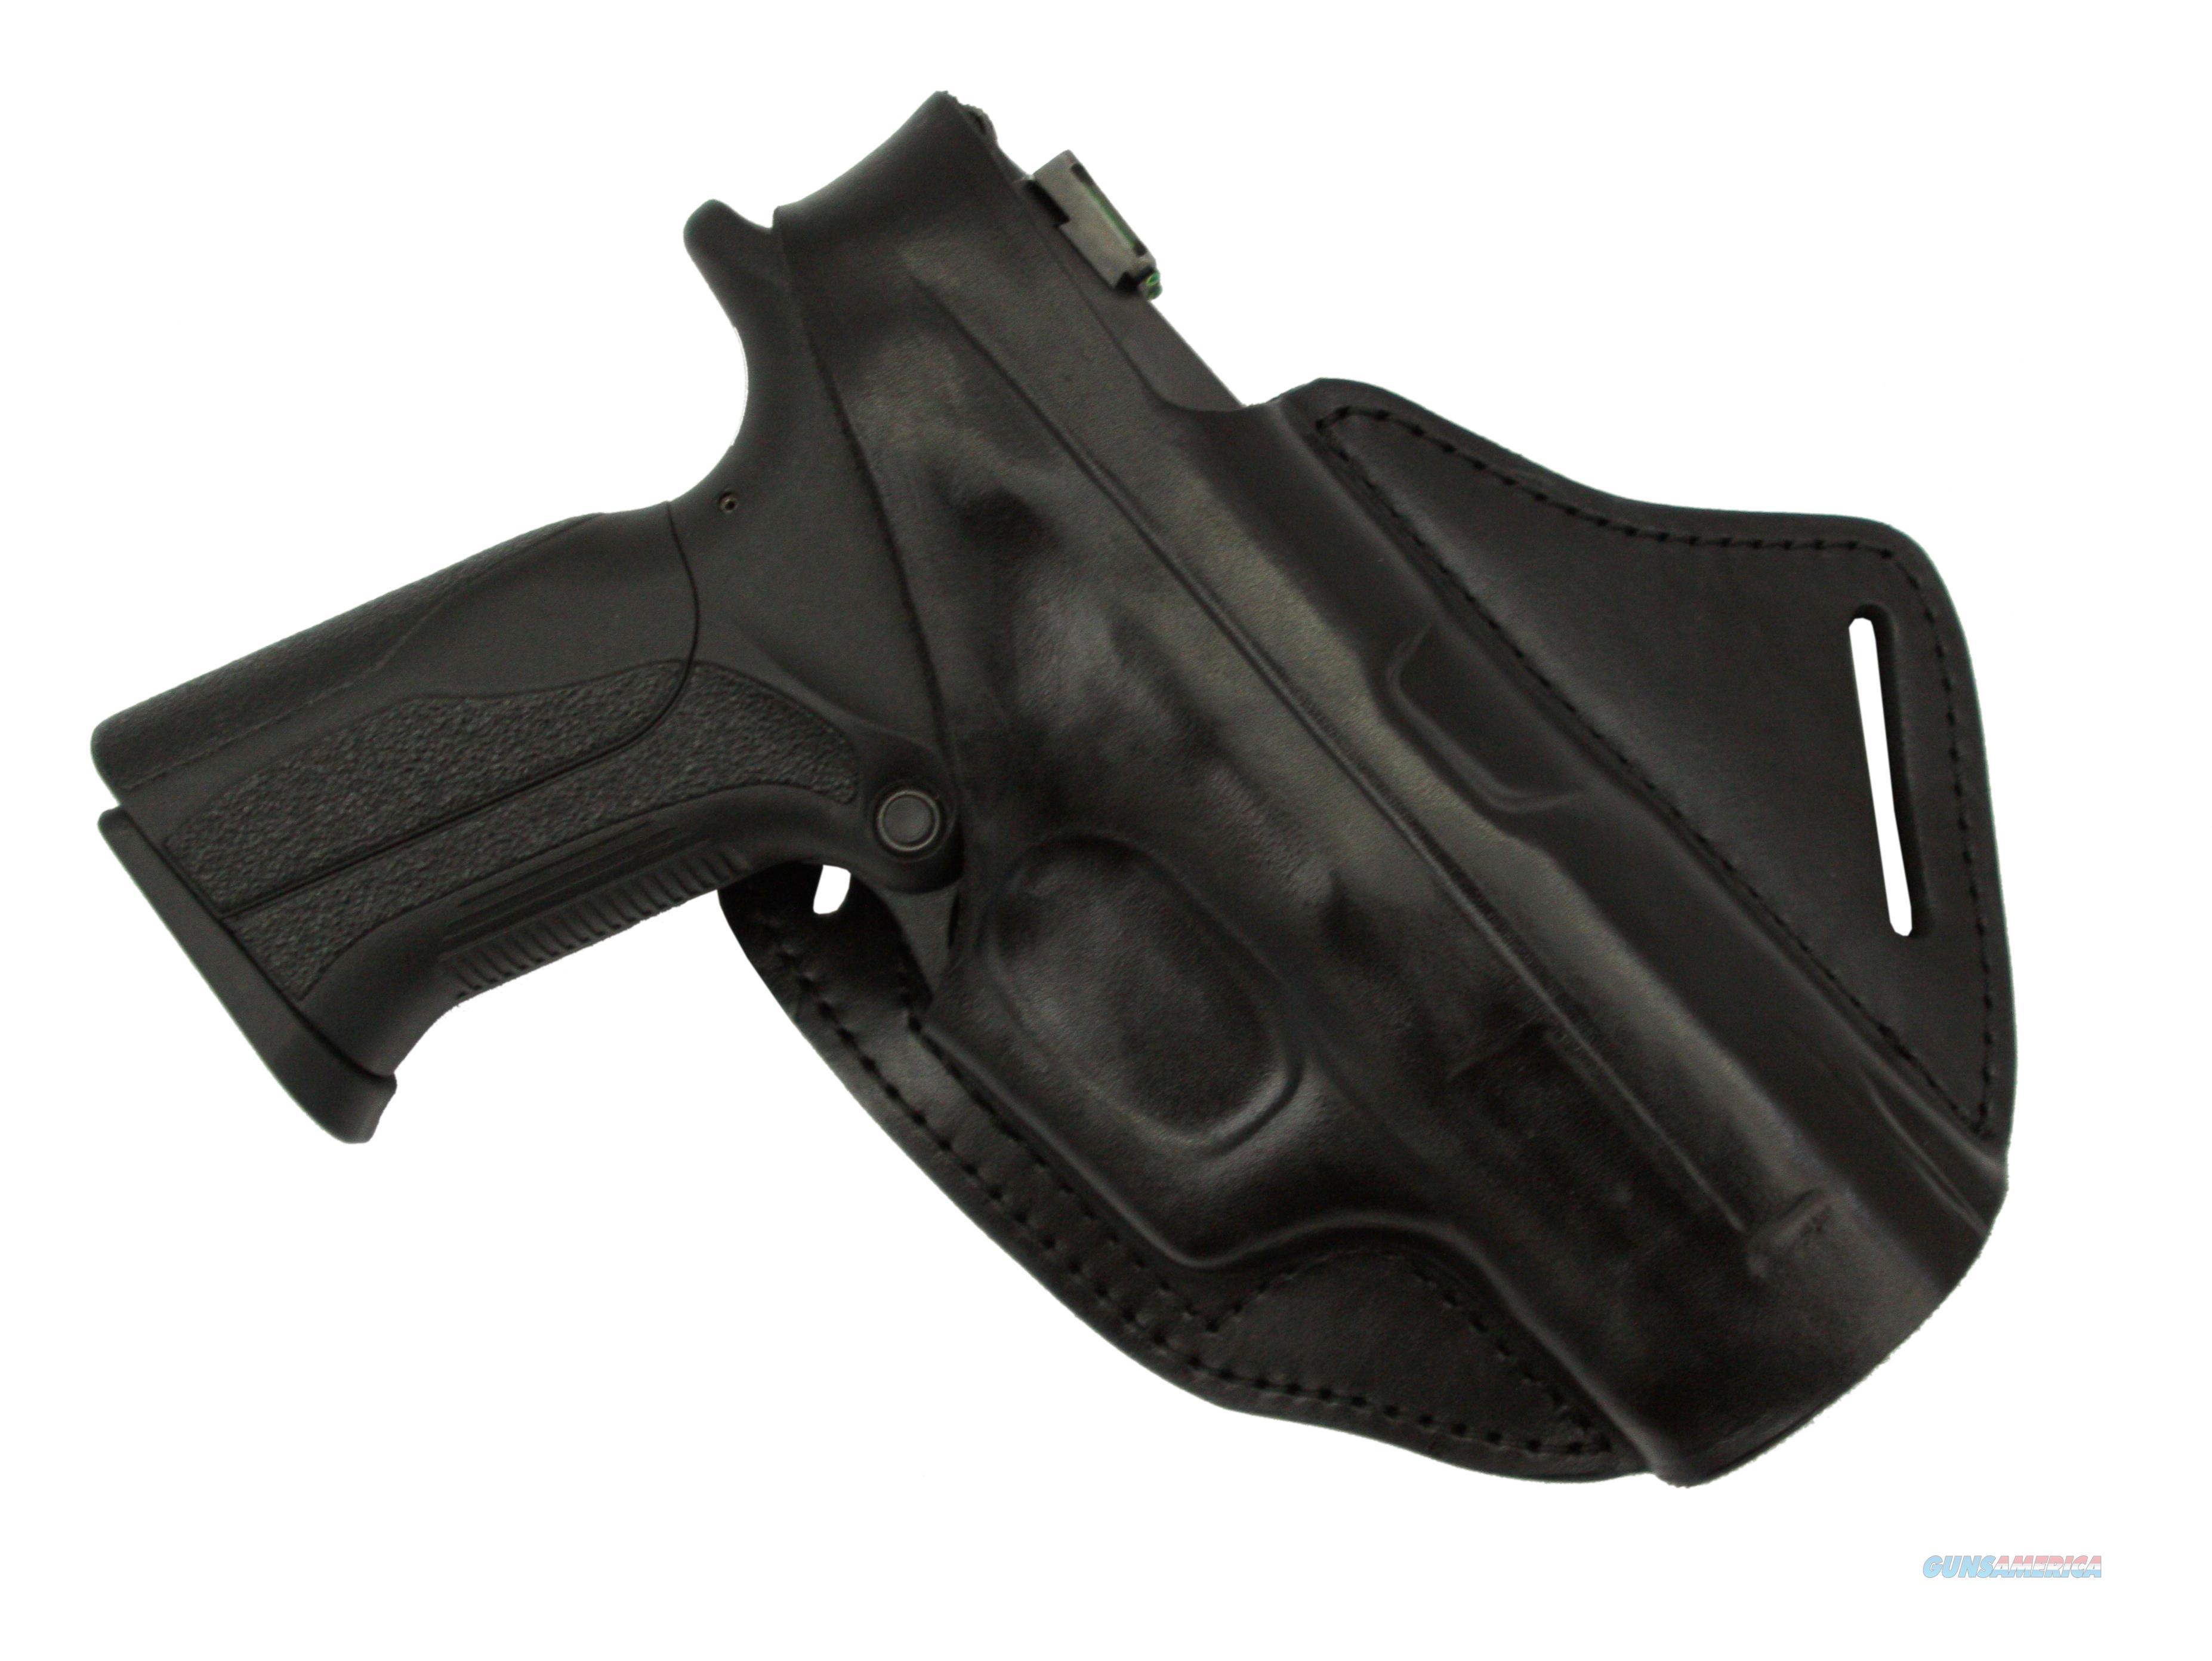 Cross Draw Leather Belt Holster  Glock 26, 27, 28, 33, 34  Non-Guns > Holsters and Gunleather > Concealed Carry